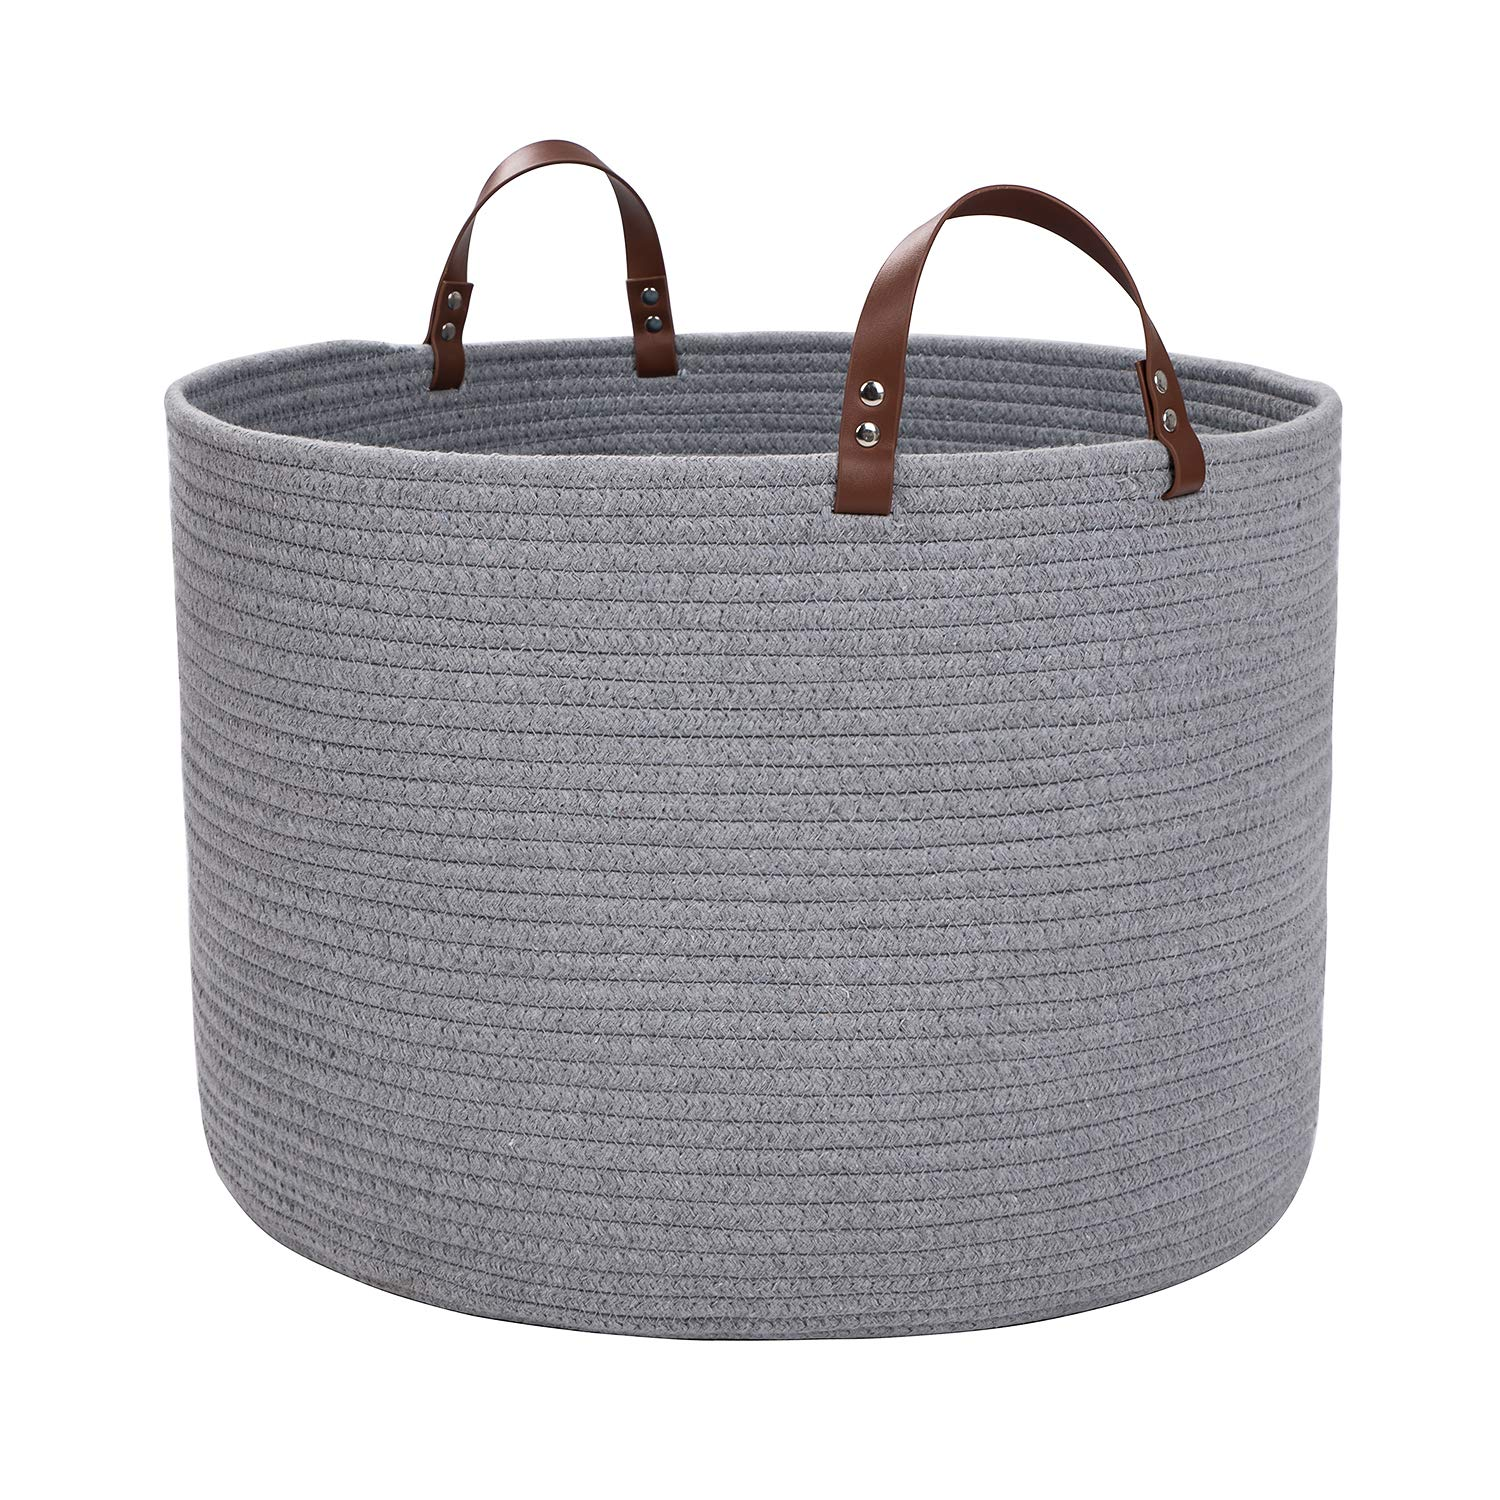 XXL Cotton Rope Basket,Storage Woven Baskets for Blankets,Laundry, Towel,Nursery Basket by Braided Crown (XXL Light Grey) by Braided Crown